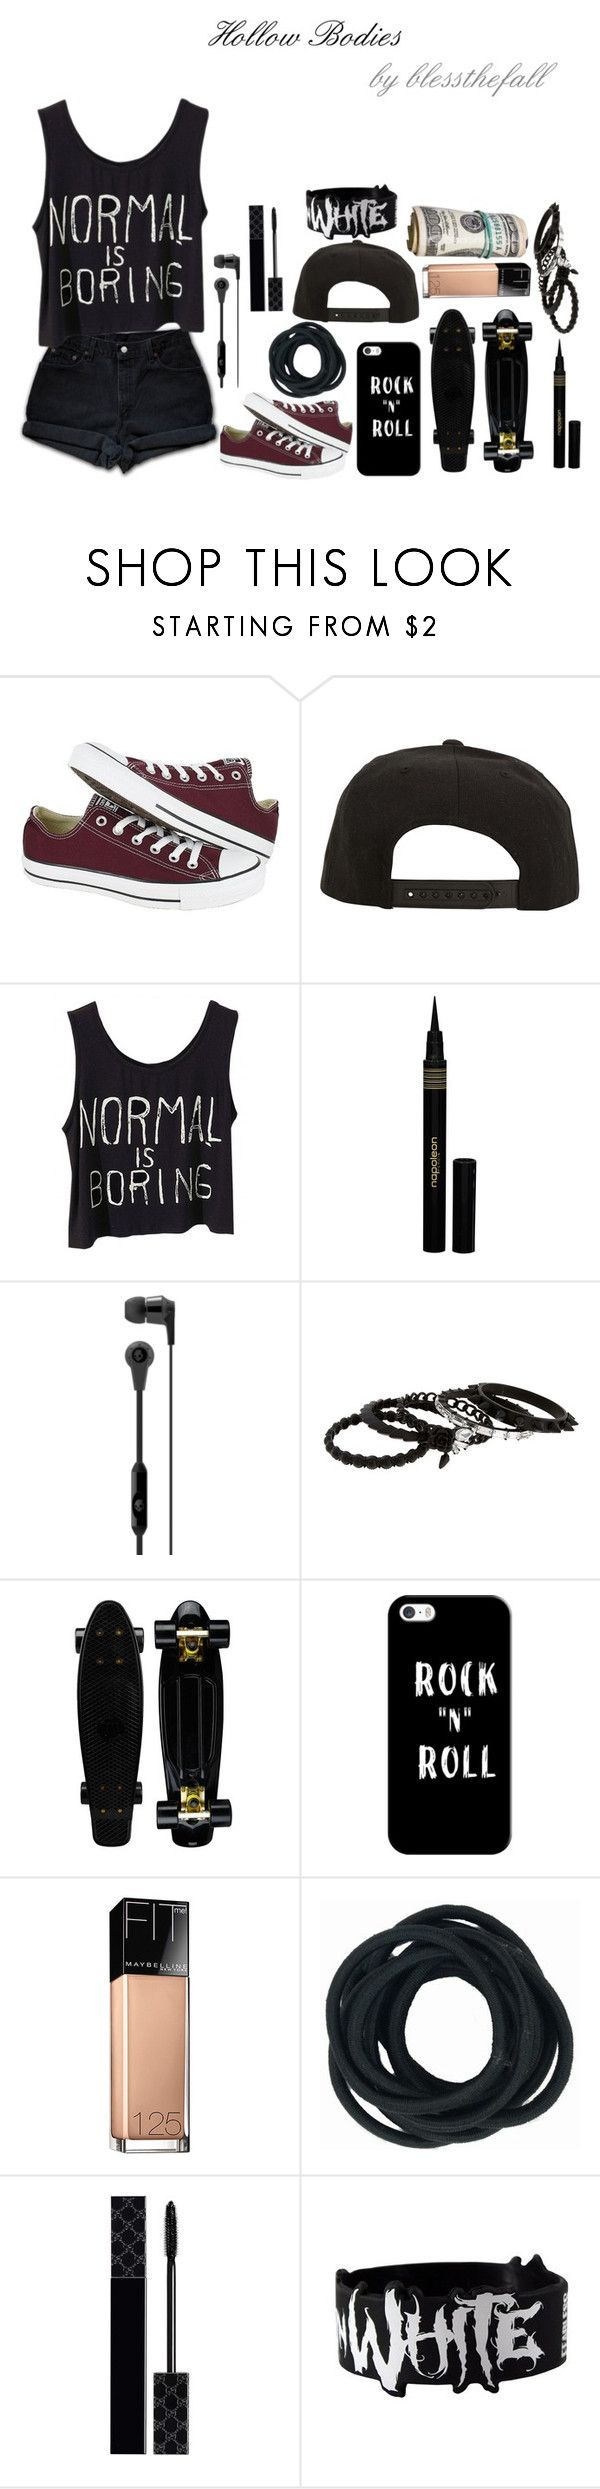 """""""❝Hollow Bodies; Blessthefall❞"""" by that-weirdo987 ❤ liked on Polyvore featuring Converse, Roark, Napoleon Perdis, Skullcandy, Erickson Beamon, Casetify, Maybelline, Gucci, music4lyfeee and notyettagged"""